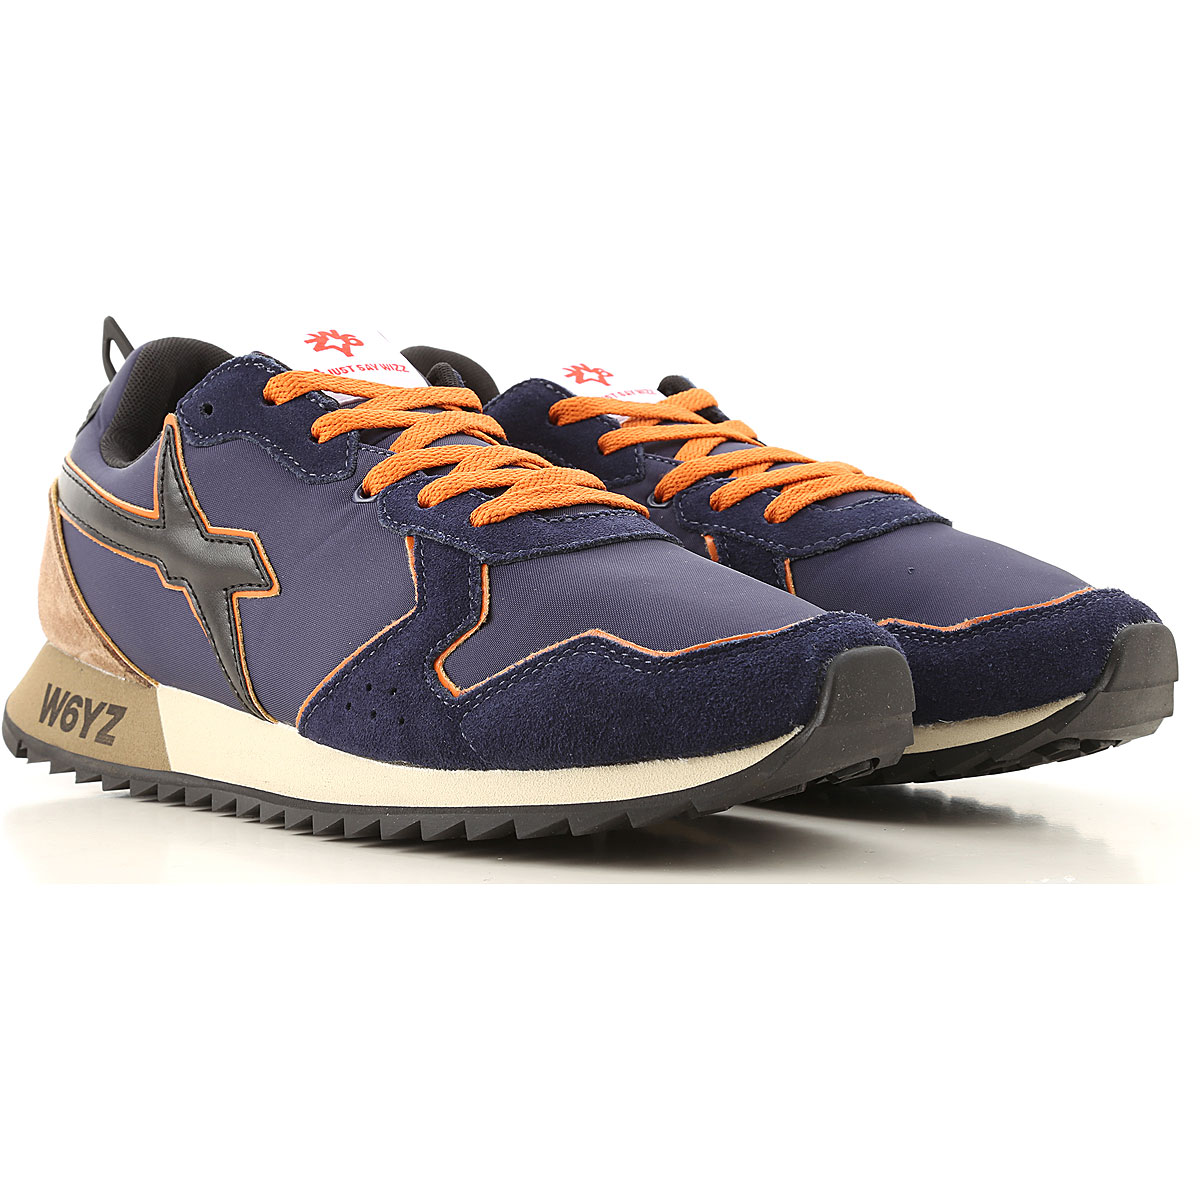 W6YZ Sneakers for Men On Sale, Blue, Leather, 2019, 10 10.5 11.5 9